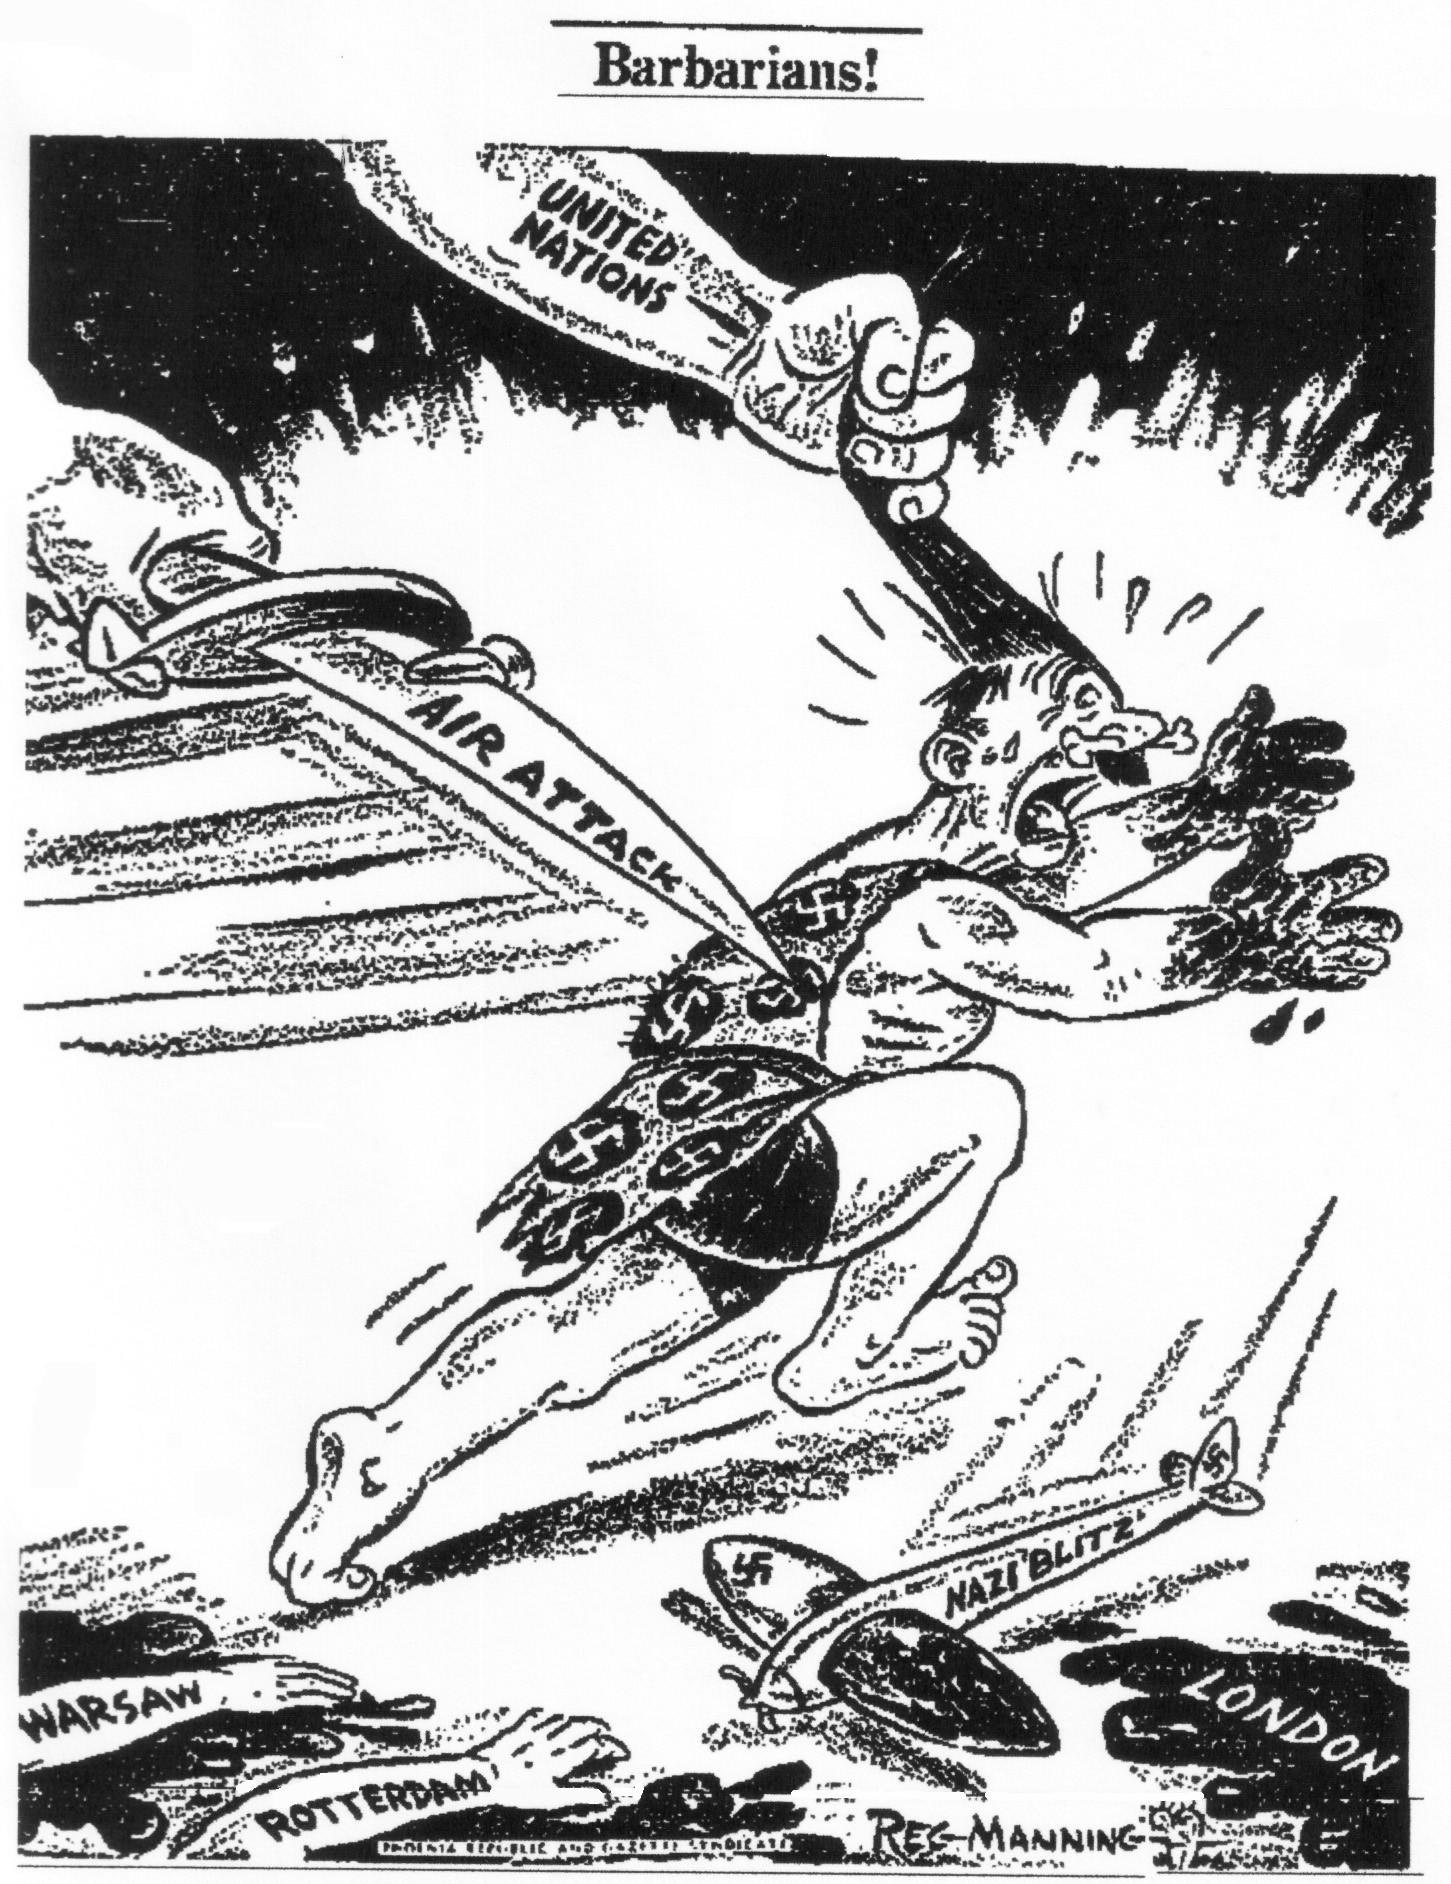 """1943: The United States and Great Britain agreed on a combined bomber offensive against Nazi Germany. In this cartoon, days after German dictator Adolf Hitler's 54th birthday, he is depicted as a frightened cave man with bloody hands, fleeing allied air power as a German plane, labeled """"Nazi blitz,"""" goes down. The """"United Nations"""" refers to America and Britain, not the multinational body created after the war."""